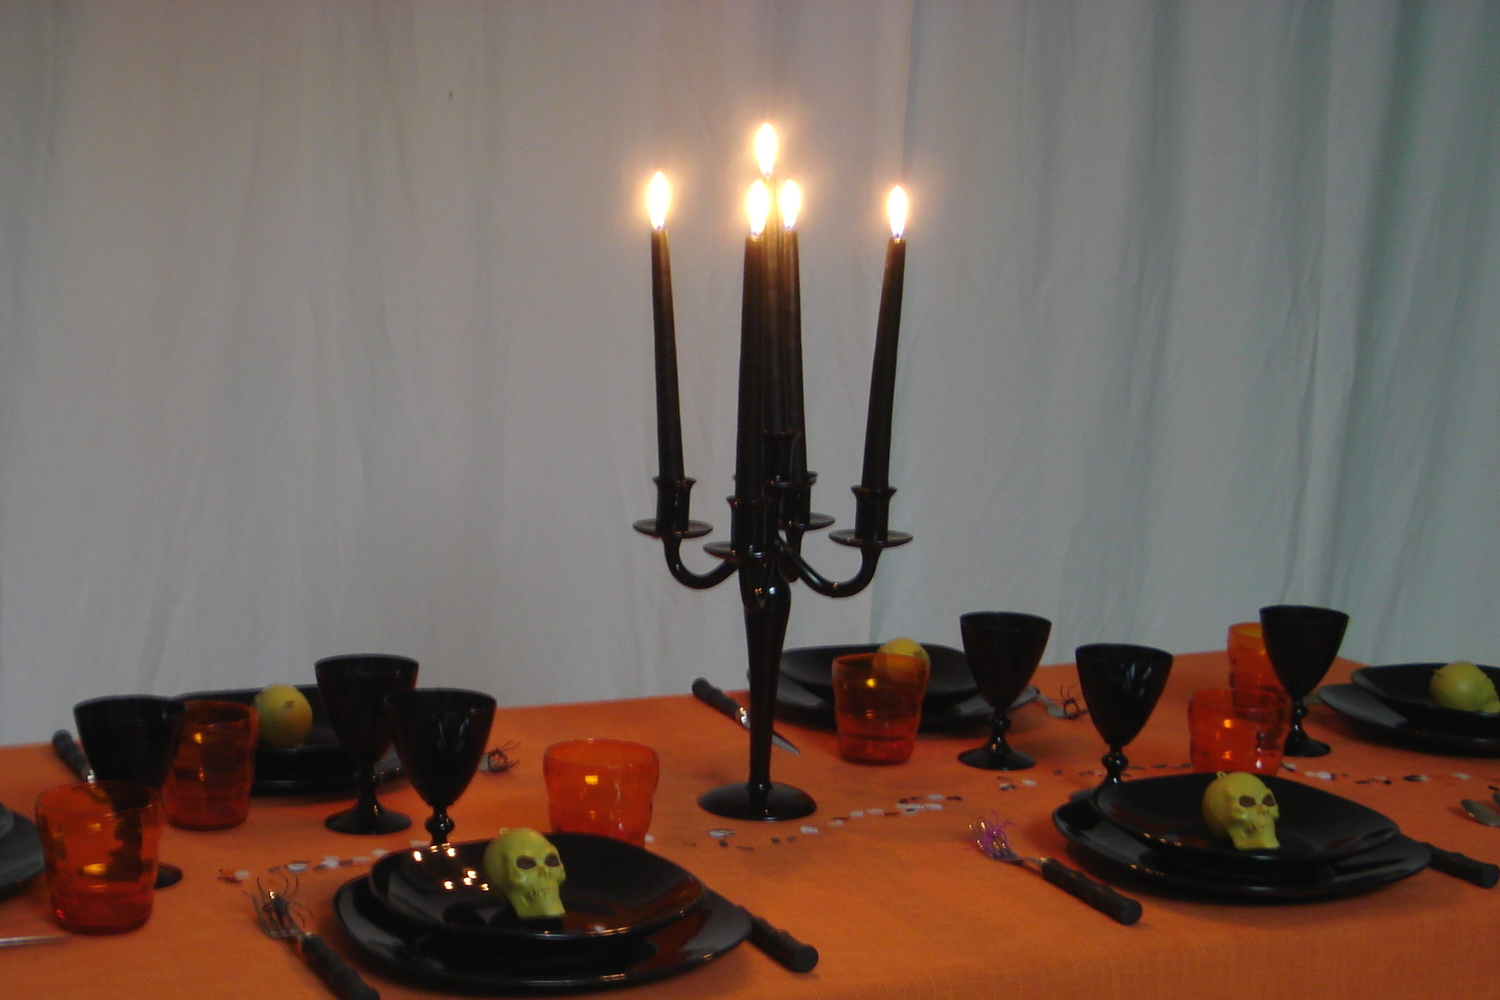 Candelabro-nero-in-vetro-per-la-cena-di-halloween-dress-my-table